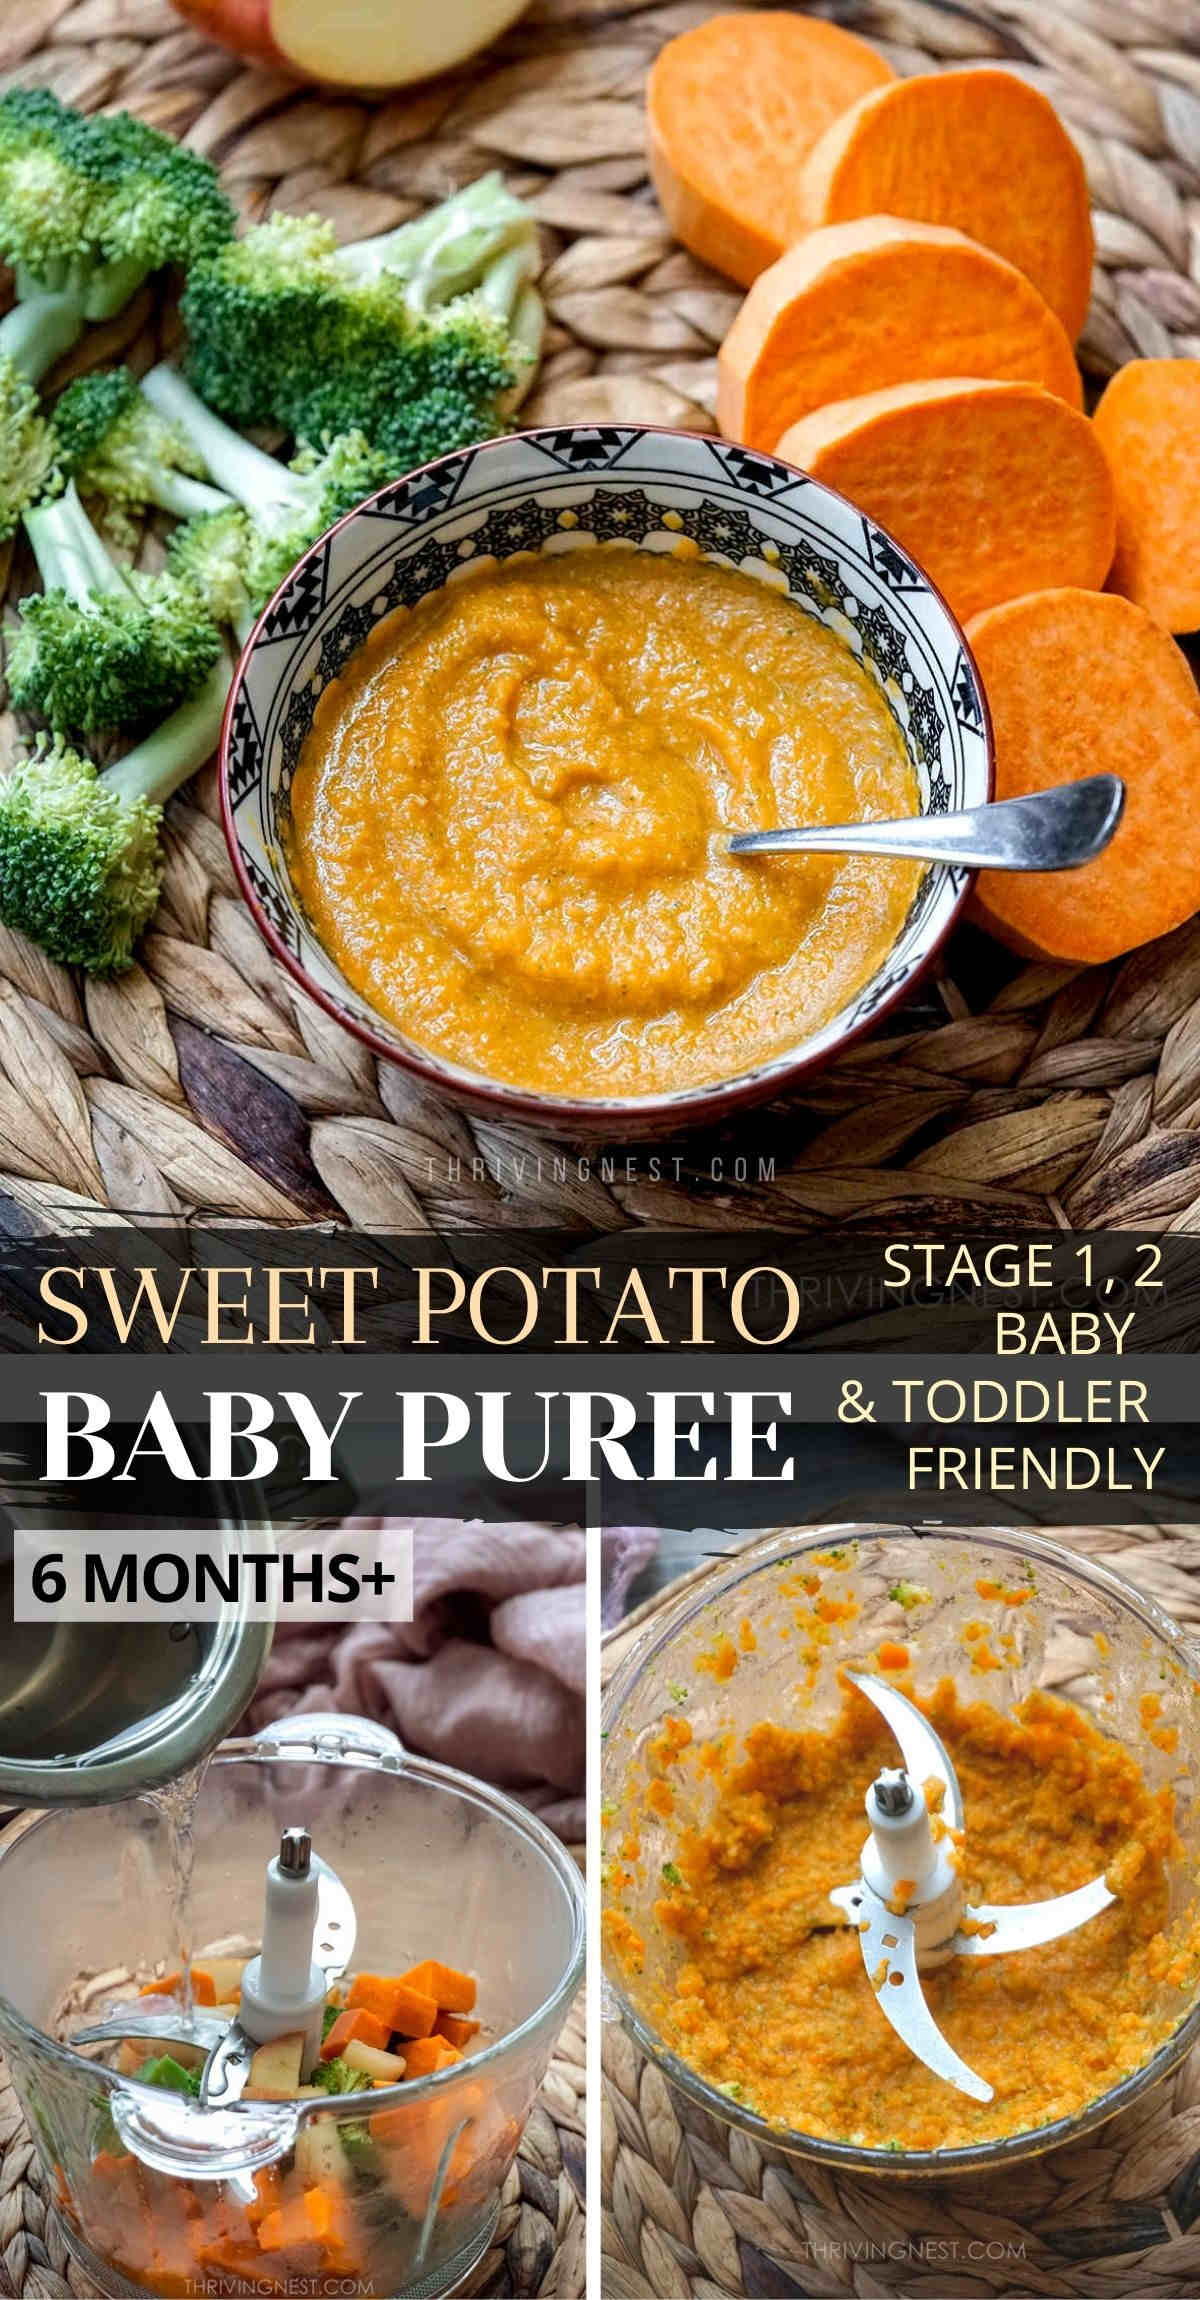 Sweet potato baby puree with apple and broccoli, steamed and blended into a smooth puree for babies 6 months + including toddlers, picture for Pinterest.